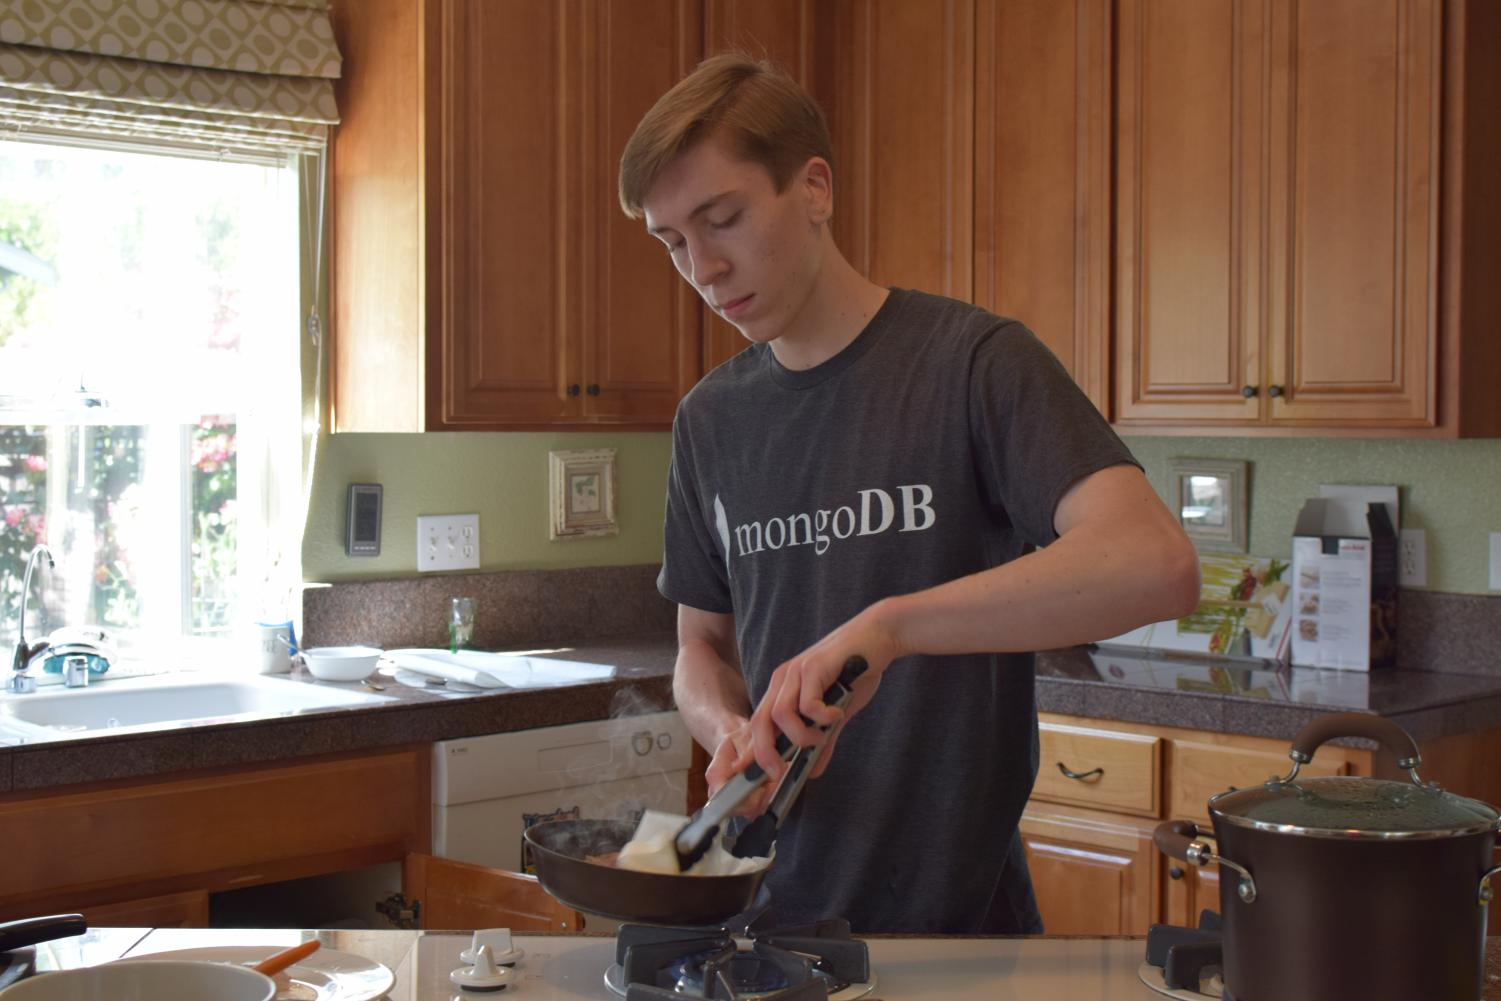 Thomas Kamm (12) cooks the beef slices in a pan, an ingredient to create the sauce. Due to excess oils, Kamm wipes the pan with a paper towel.